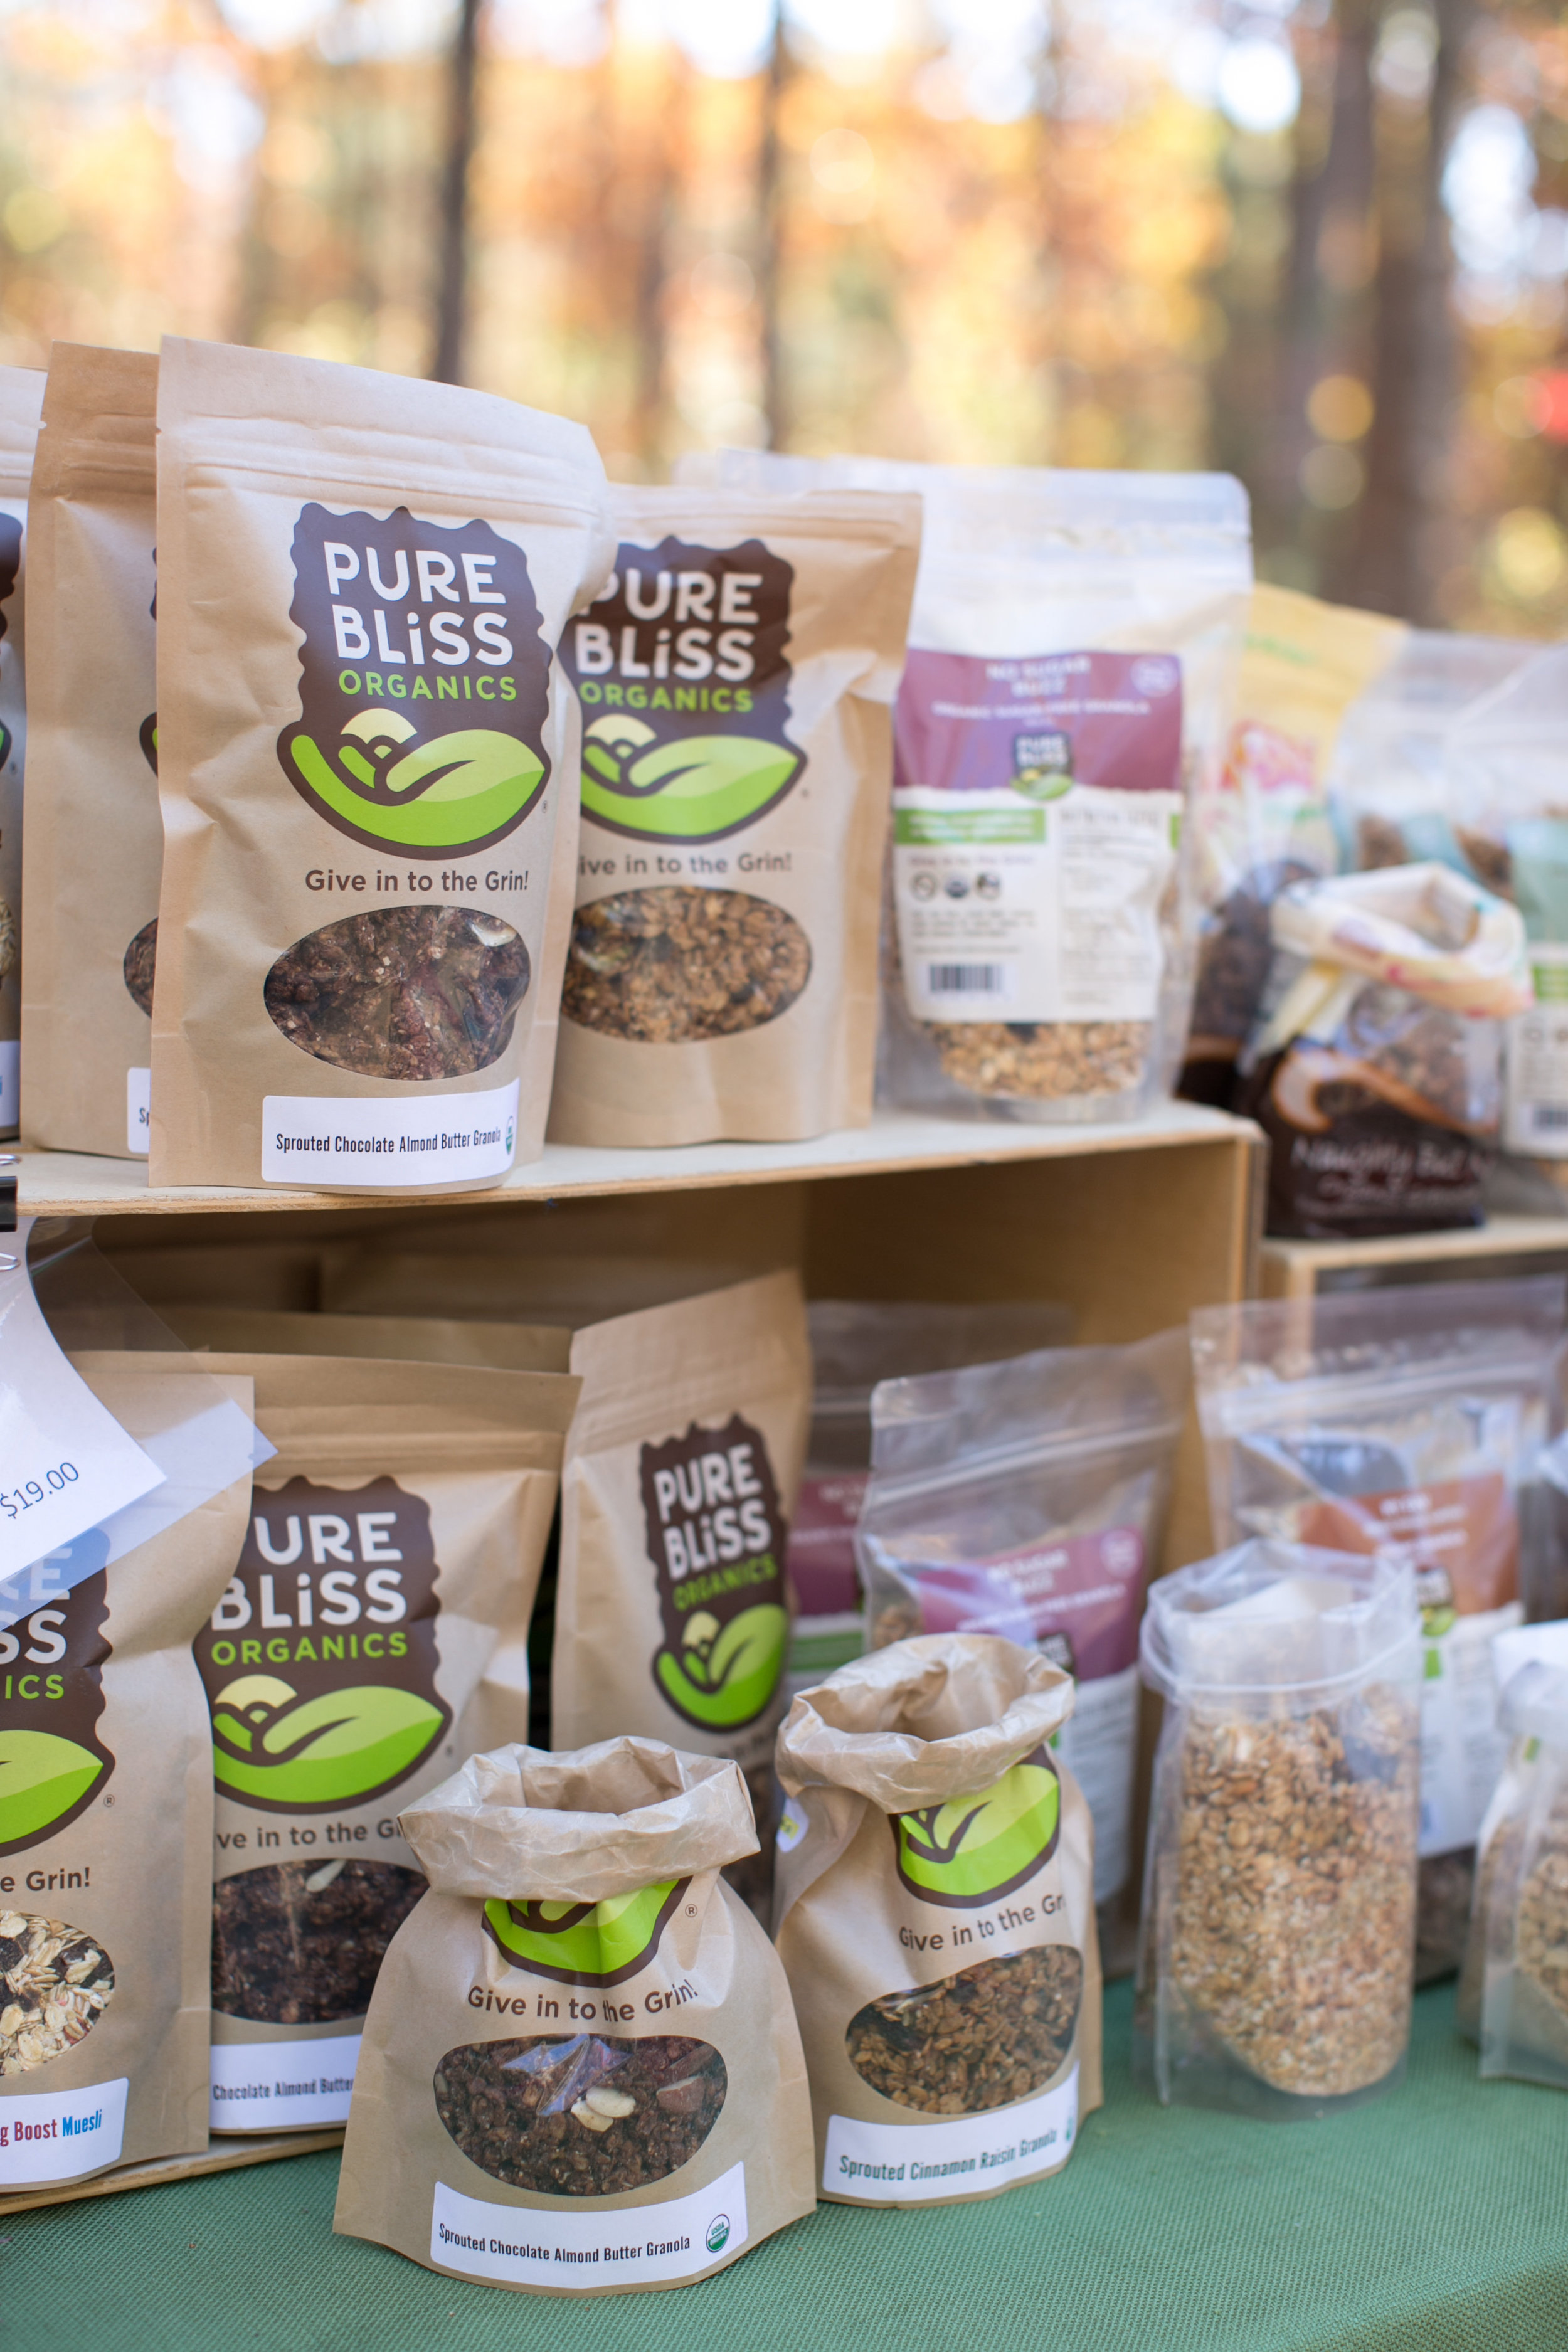 Pure Bliss Organics   Stone Mountain, GA   www.pureblissorganics.com   Packaged granola, energy bars and bites and gourmet nuts